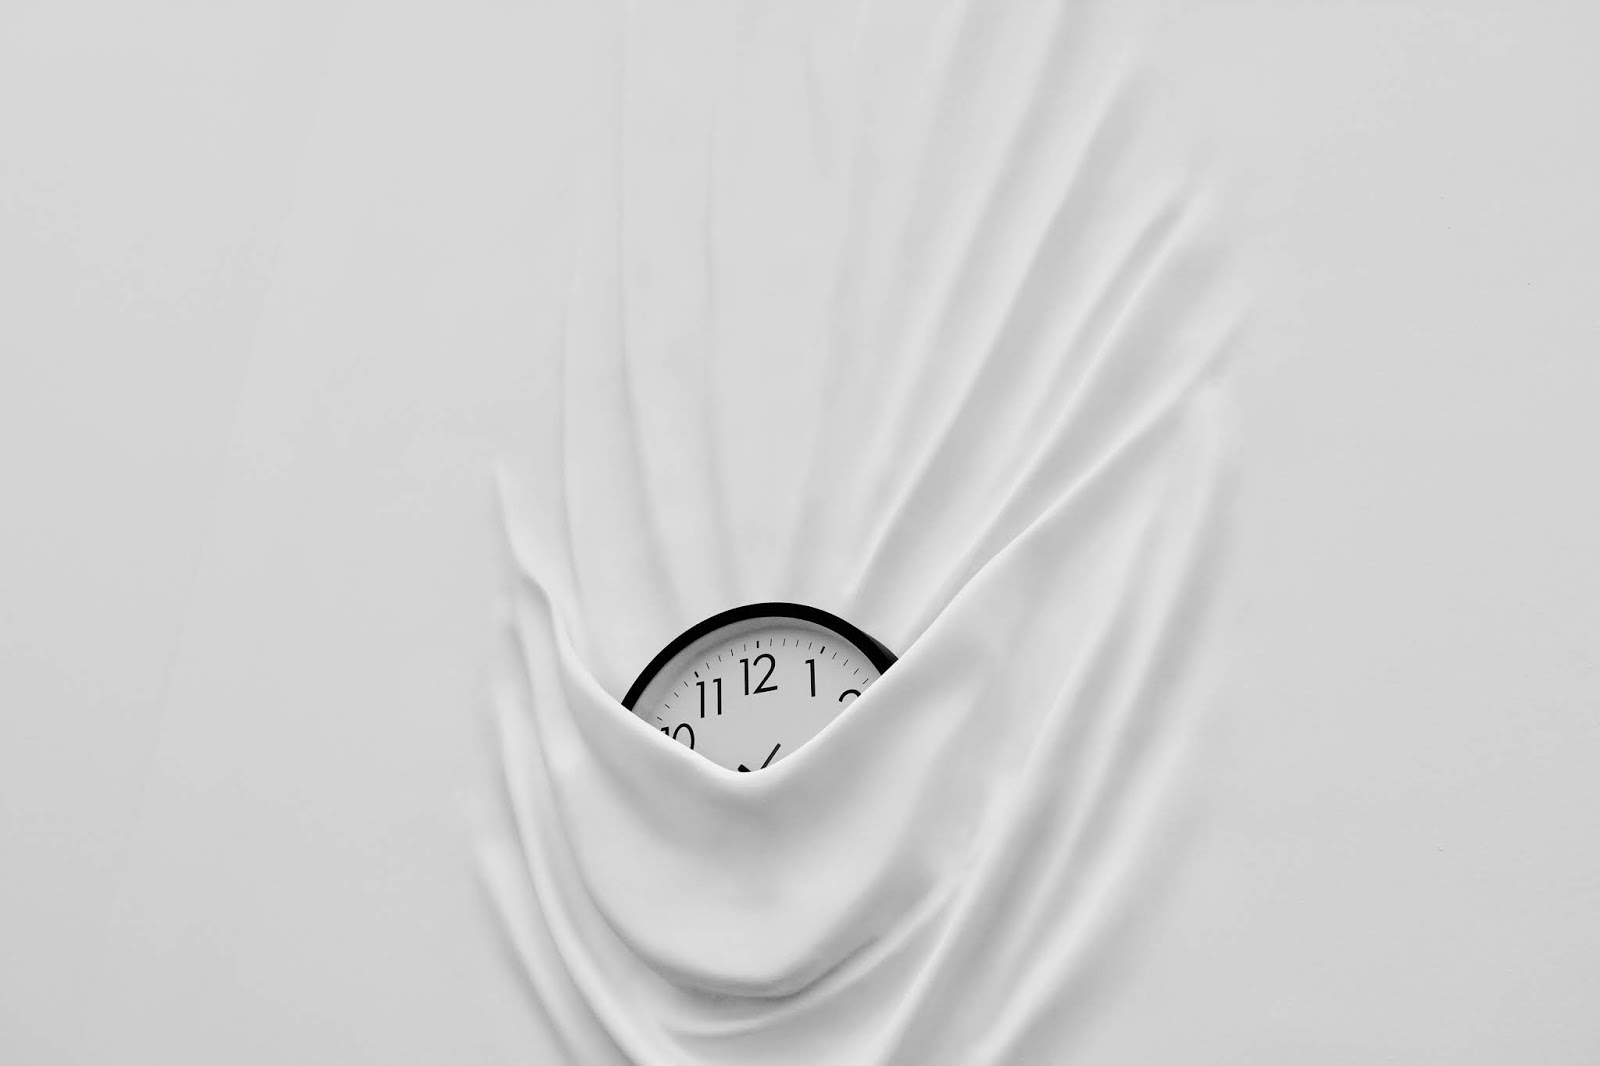 An image of a clock sinking into a wall, which was taken at the Moco Museum in Amsterdam